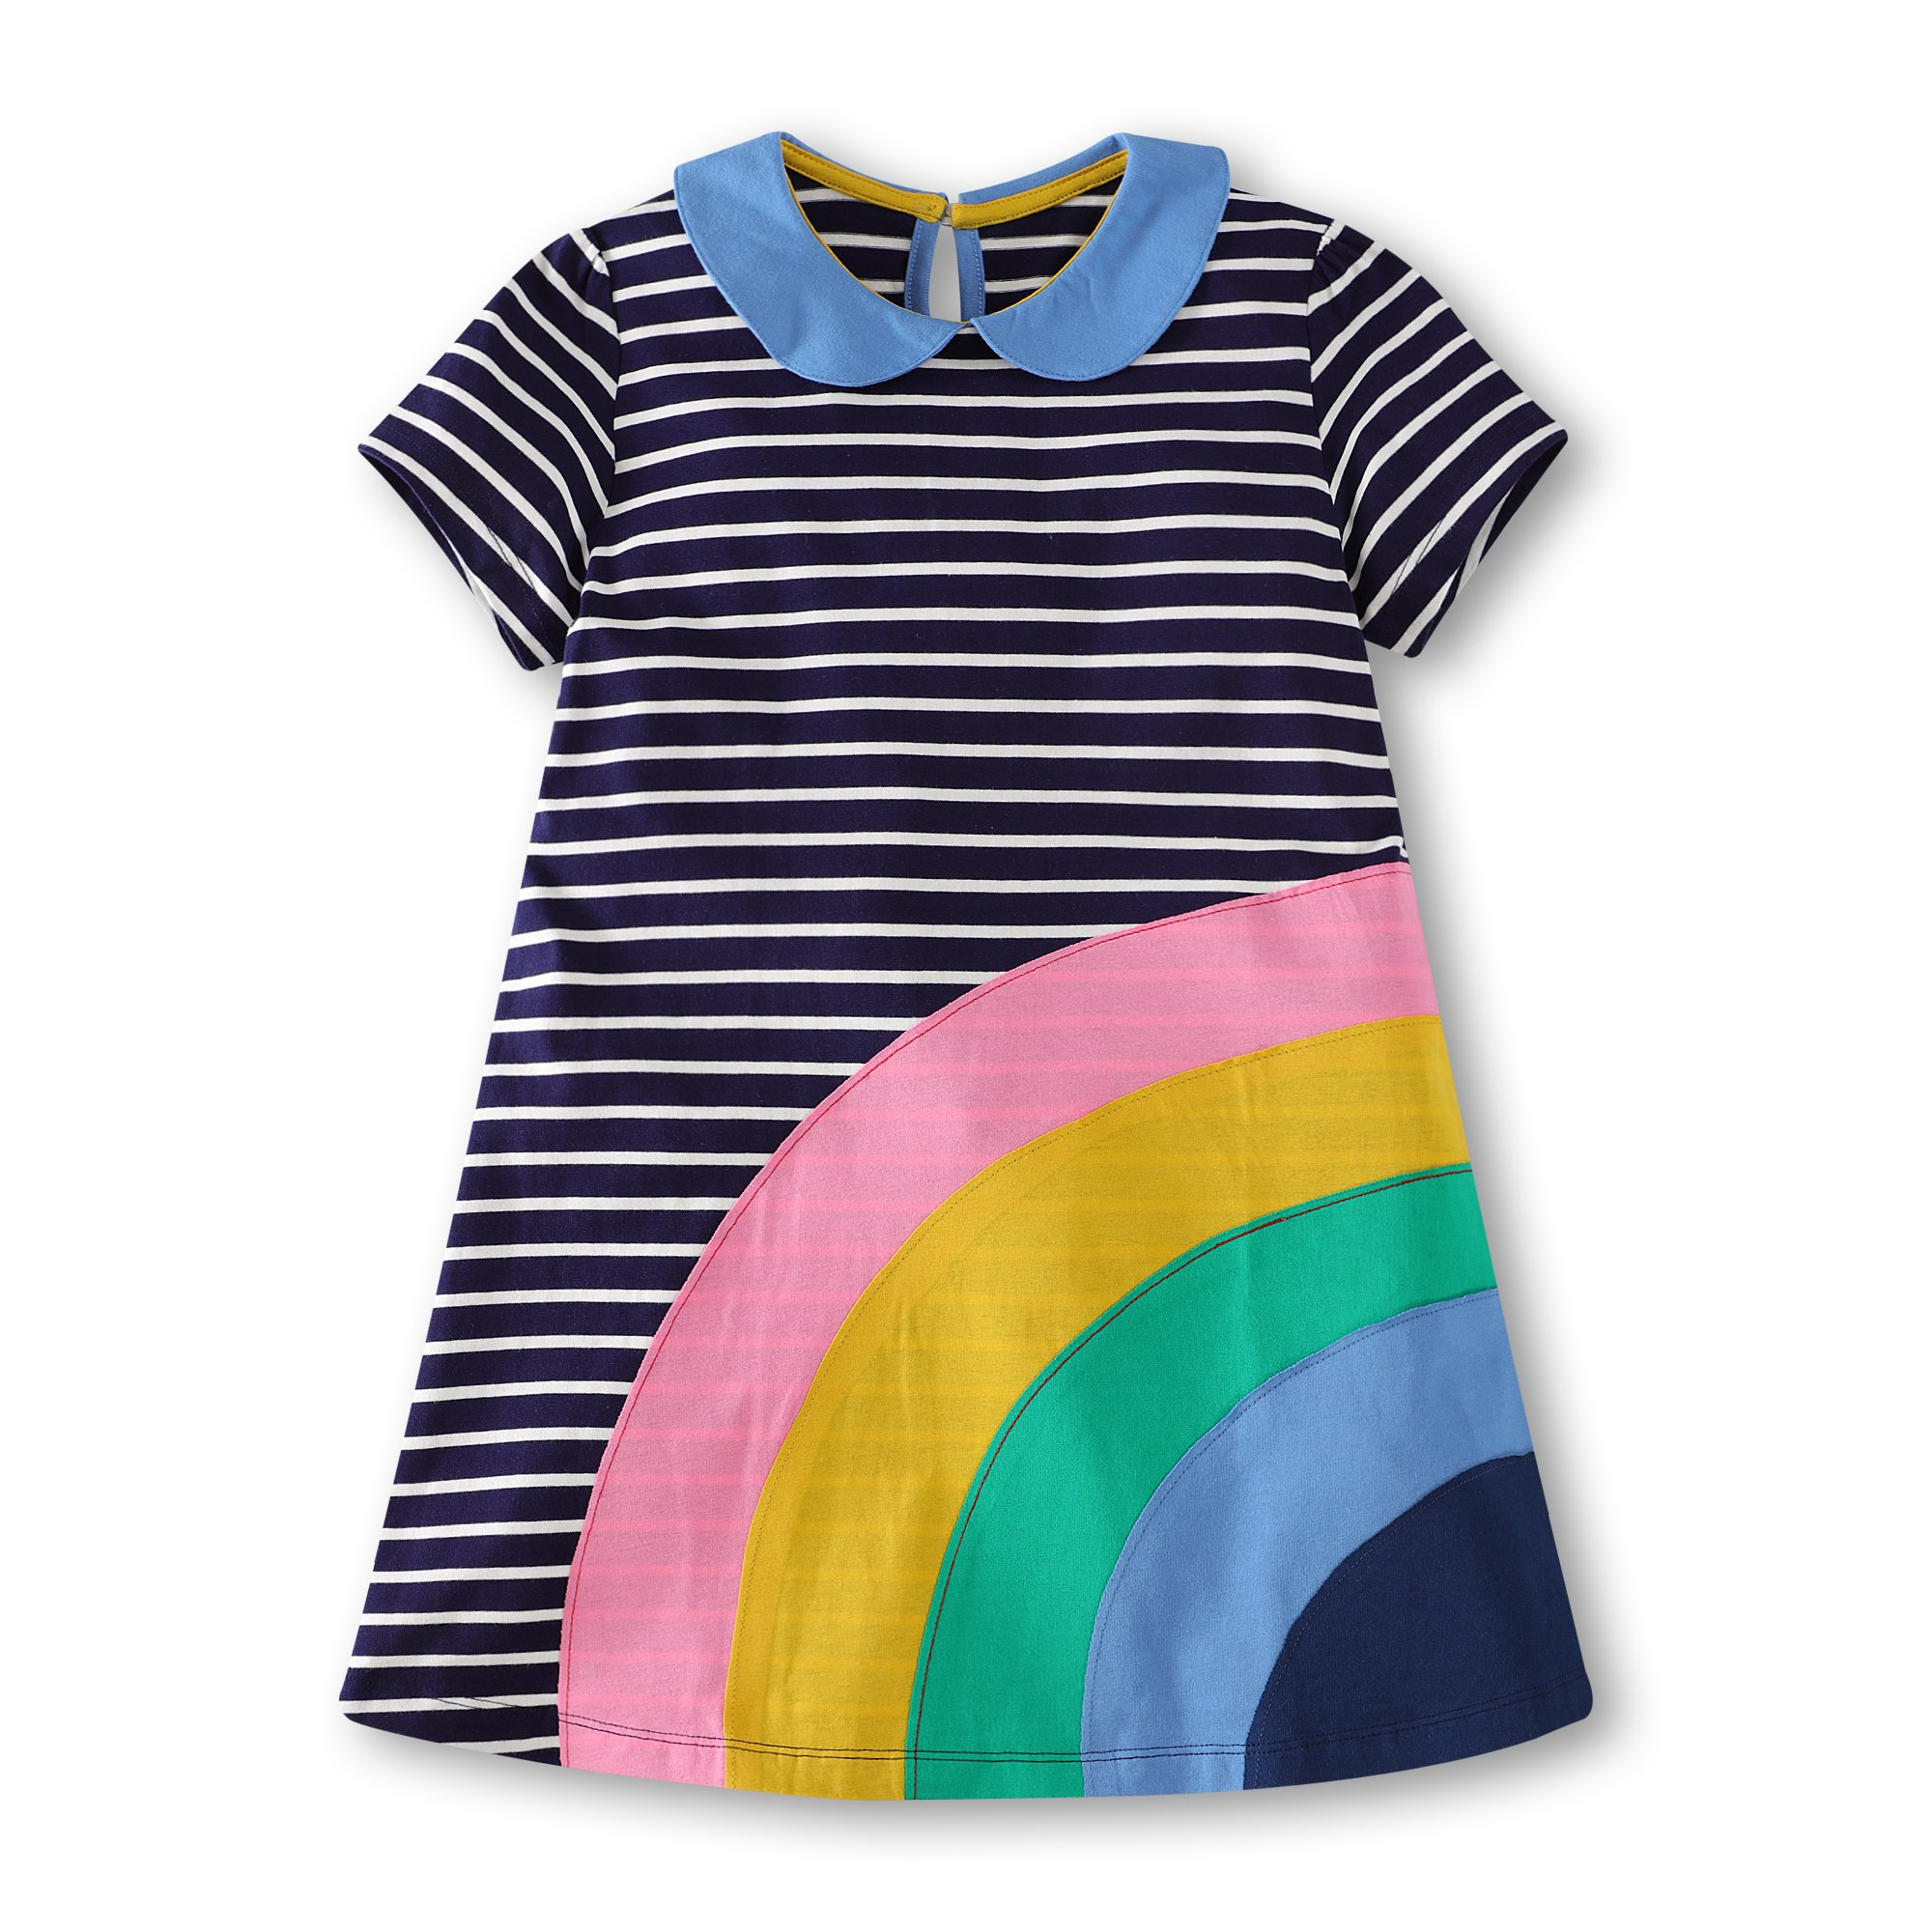 Gorboig Girls Summer Cotton Short Sleeve Stripe Dress for Toddler(Black/3-4Y)